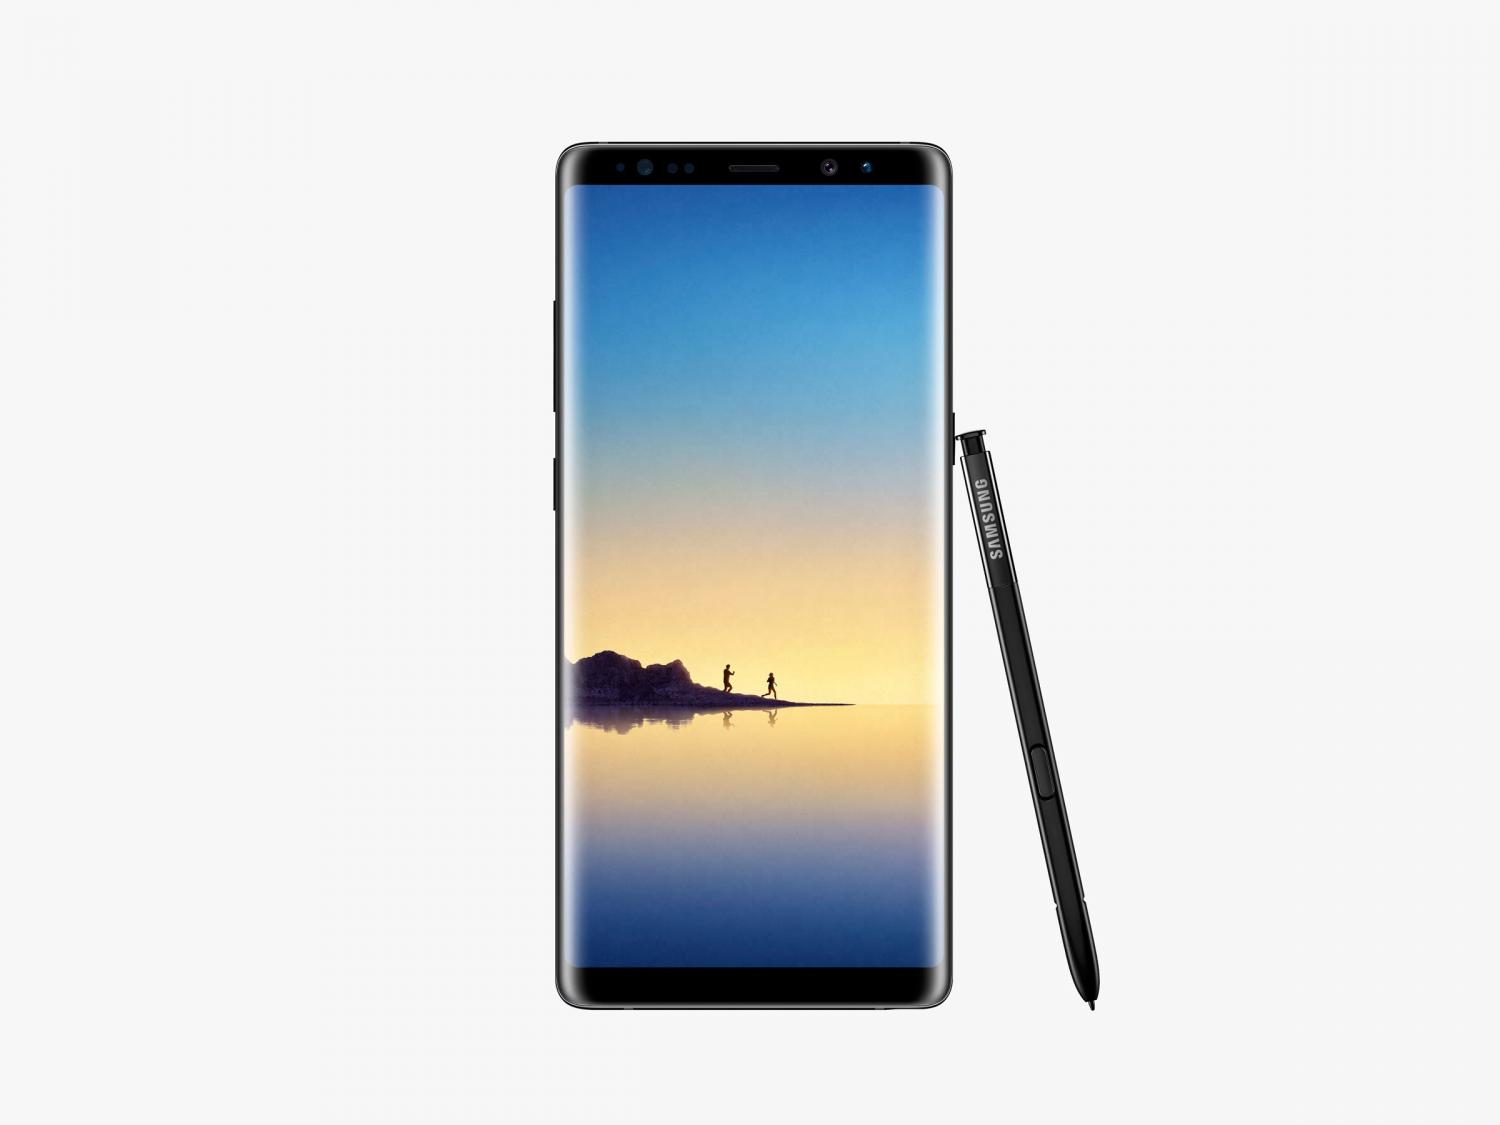 The best Samsung Galaxy Note 8 deals